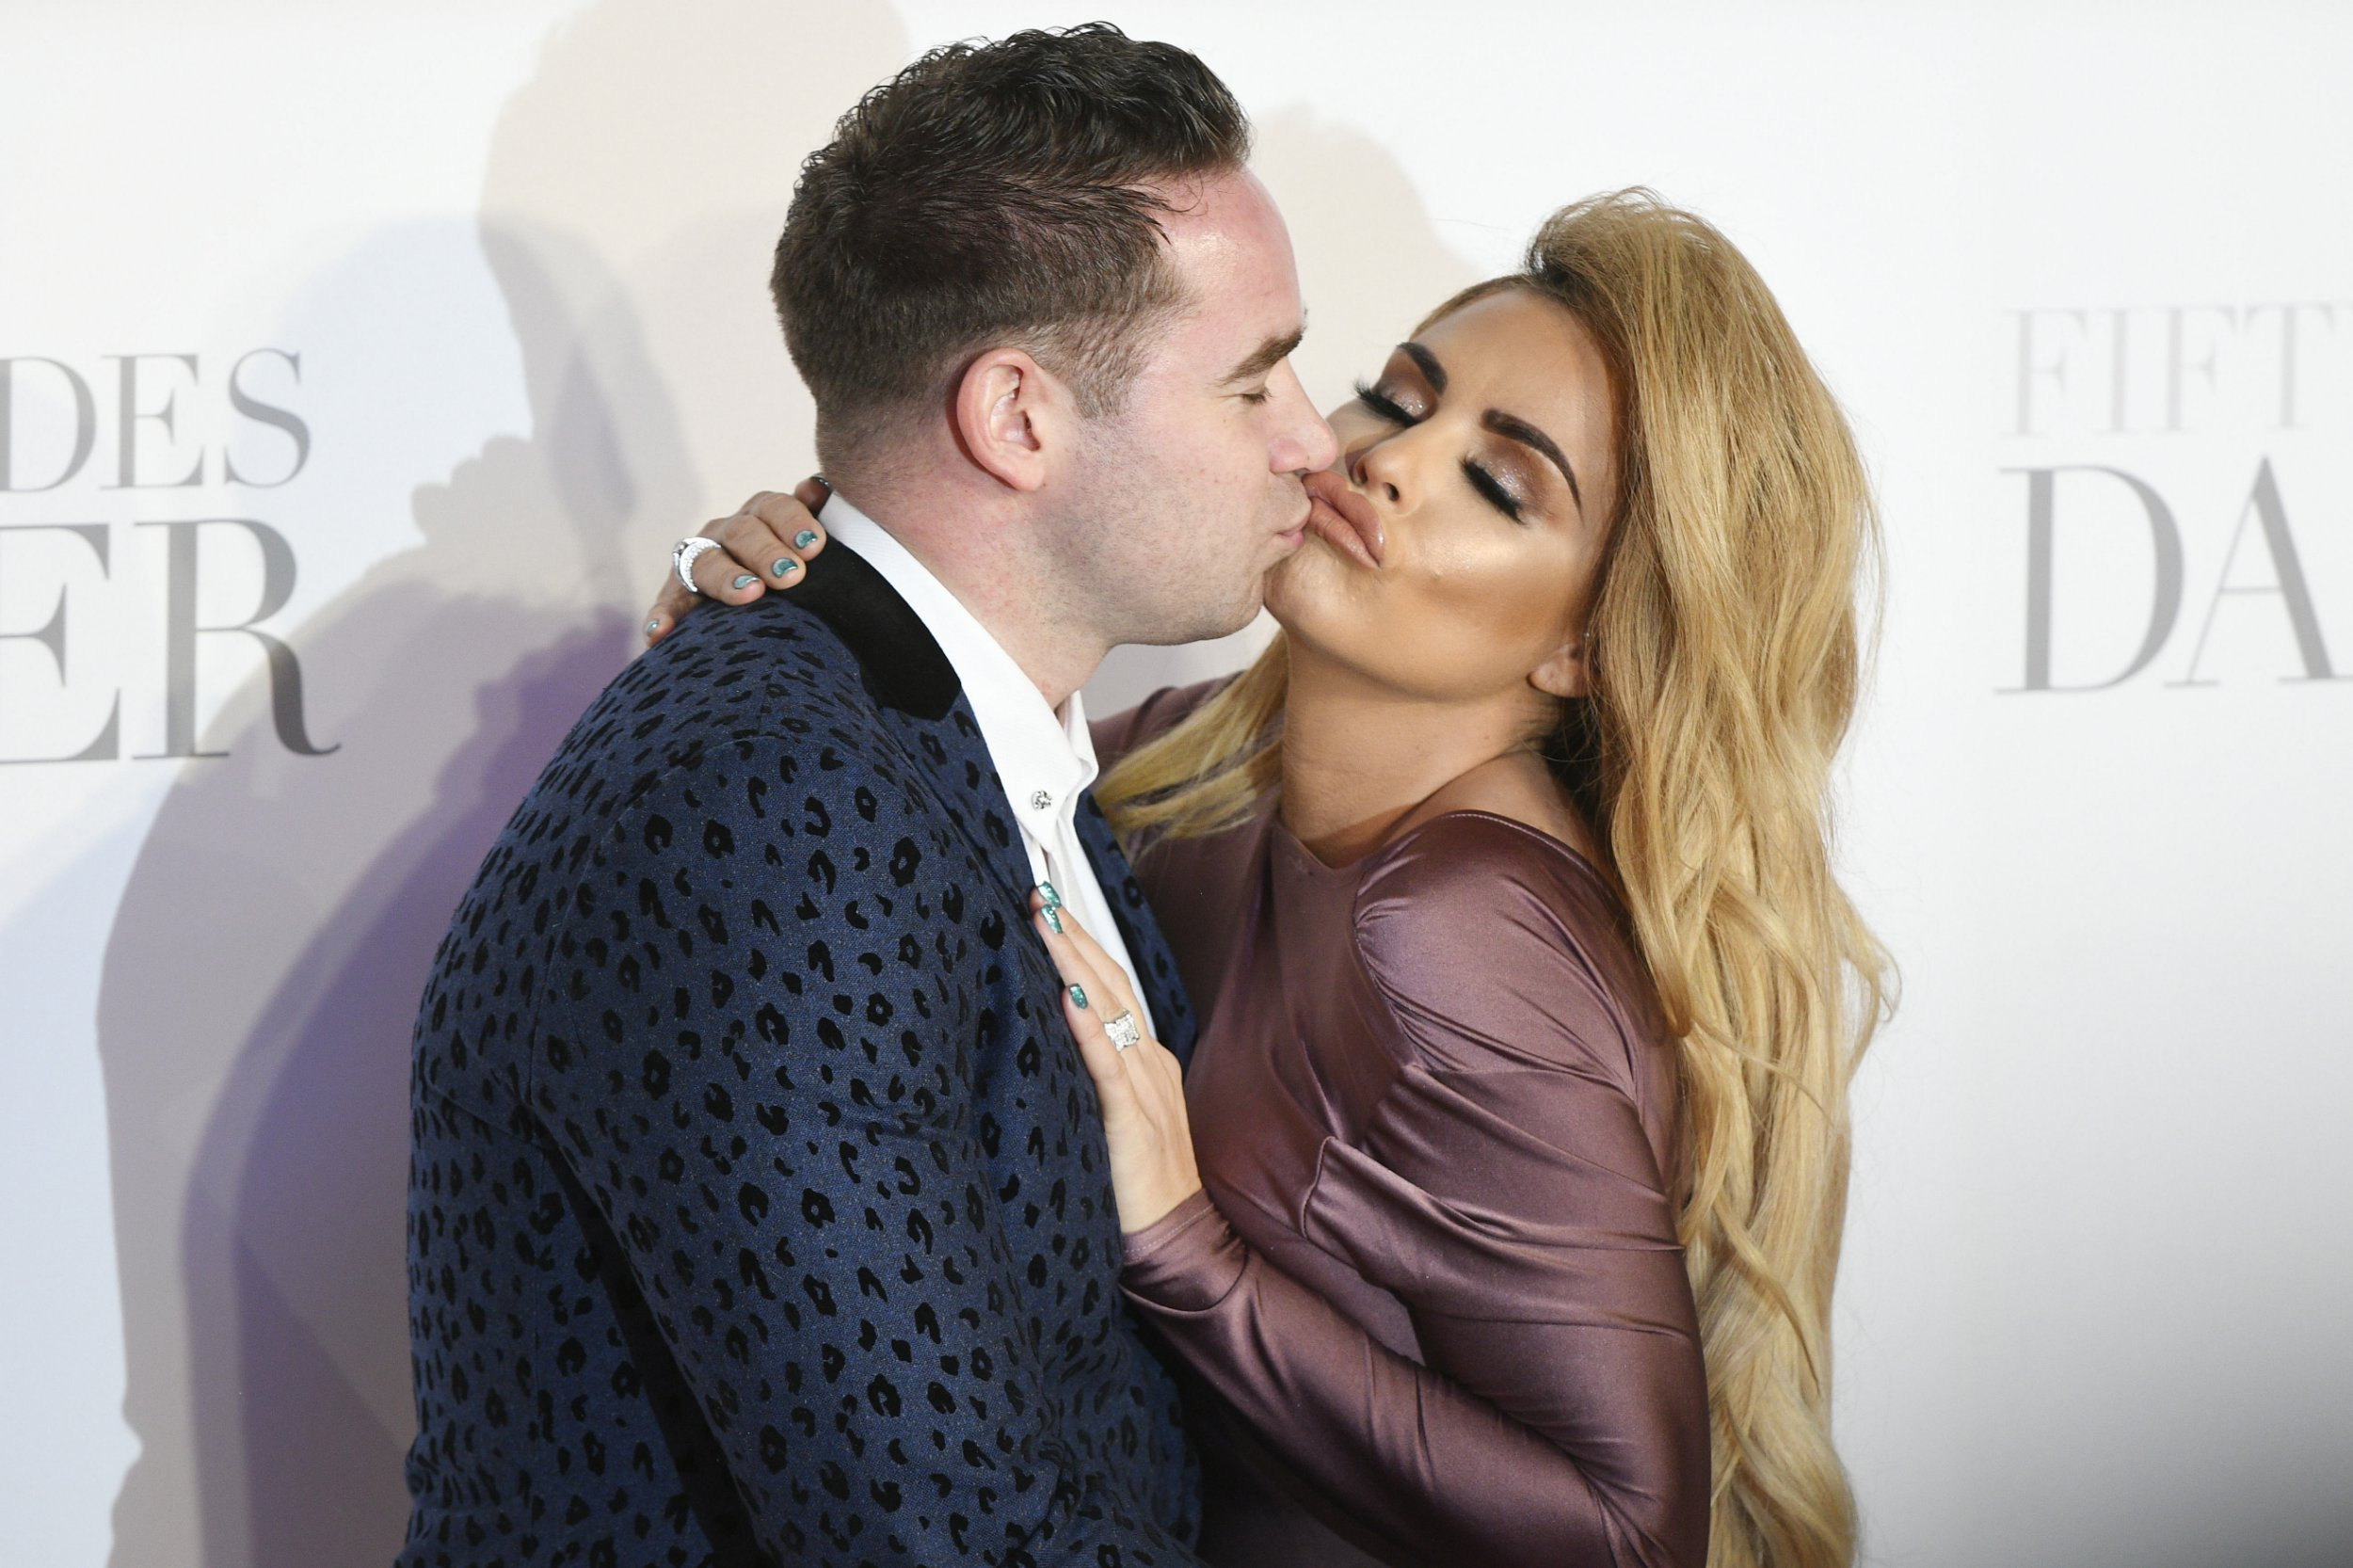 February 9, 2017 - London, London, UK - Kieran Hayler and Katie Price attend the Fifty Shades Darker UK Film Premiere at Odeon Leicester Square. (Credit Image: ???? Ray Tang via ZUMA Wire)